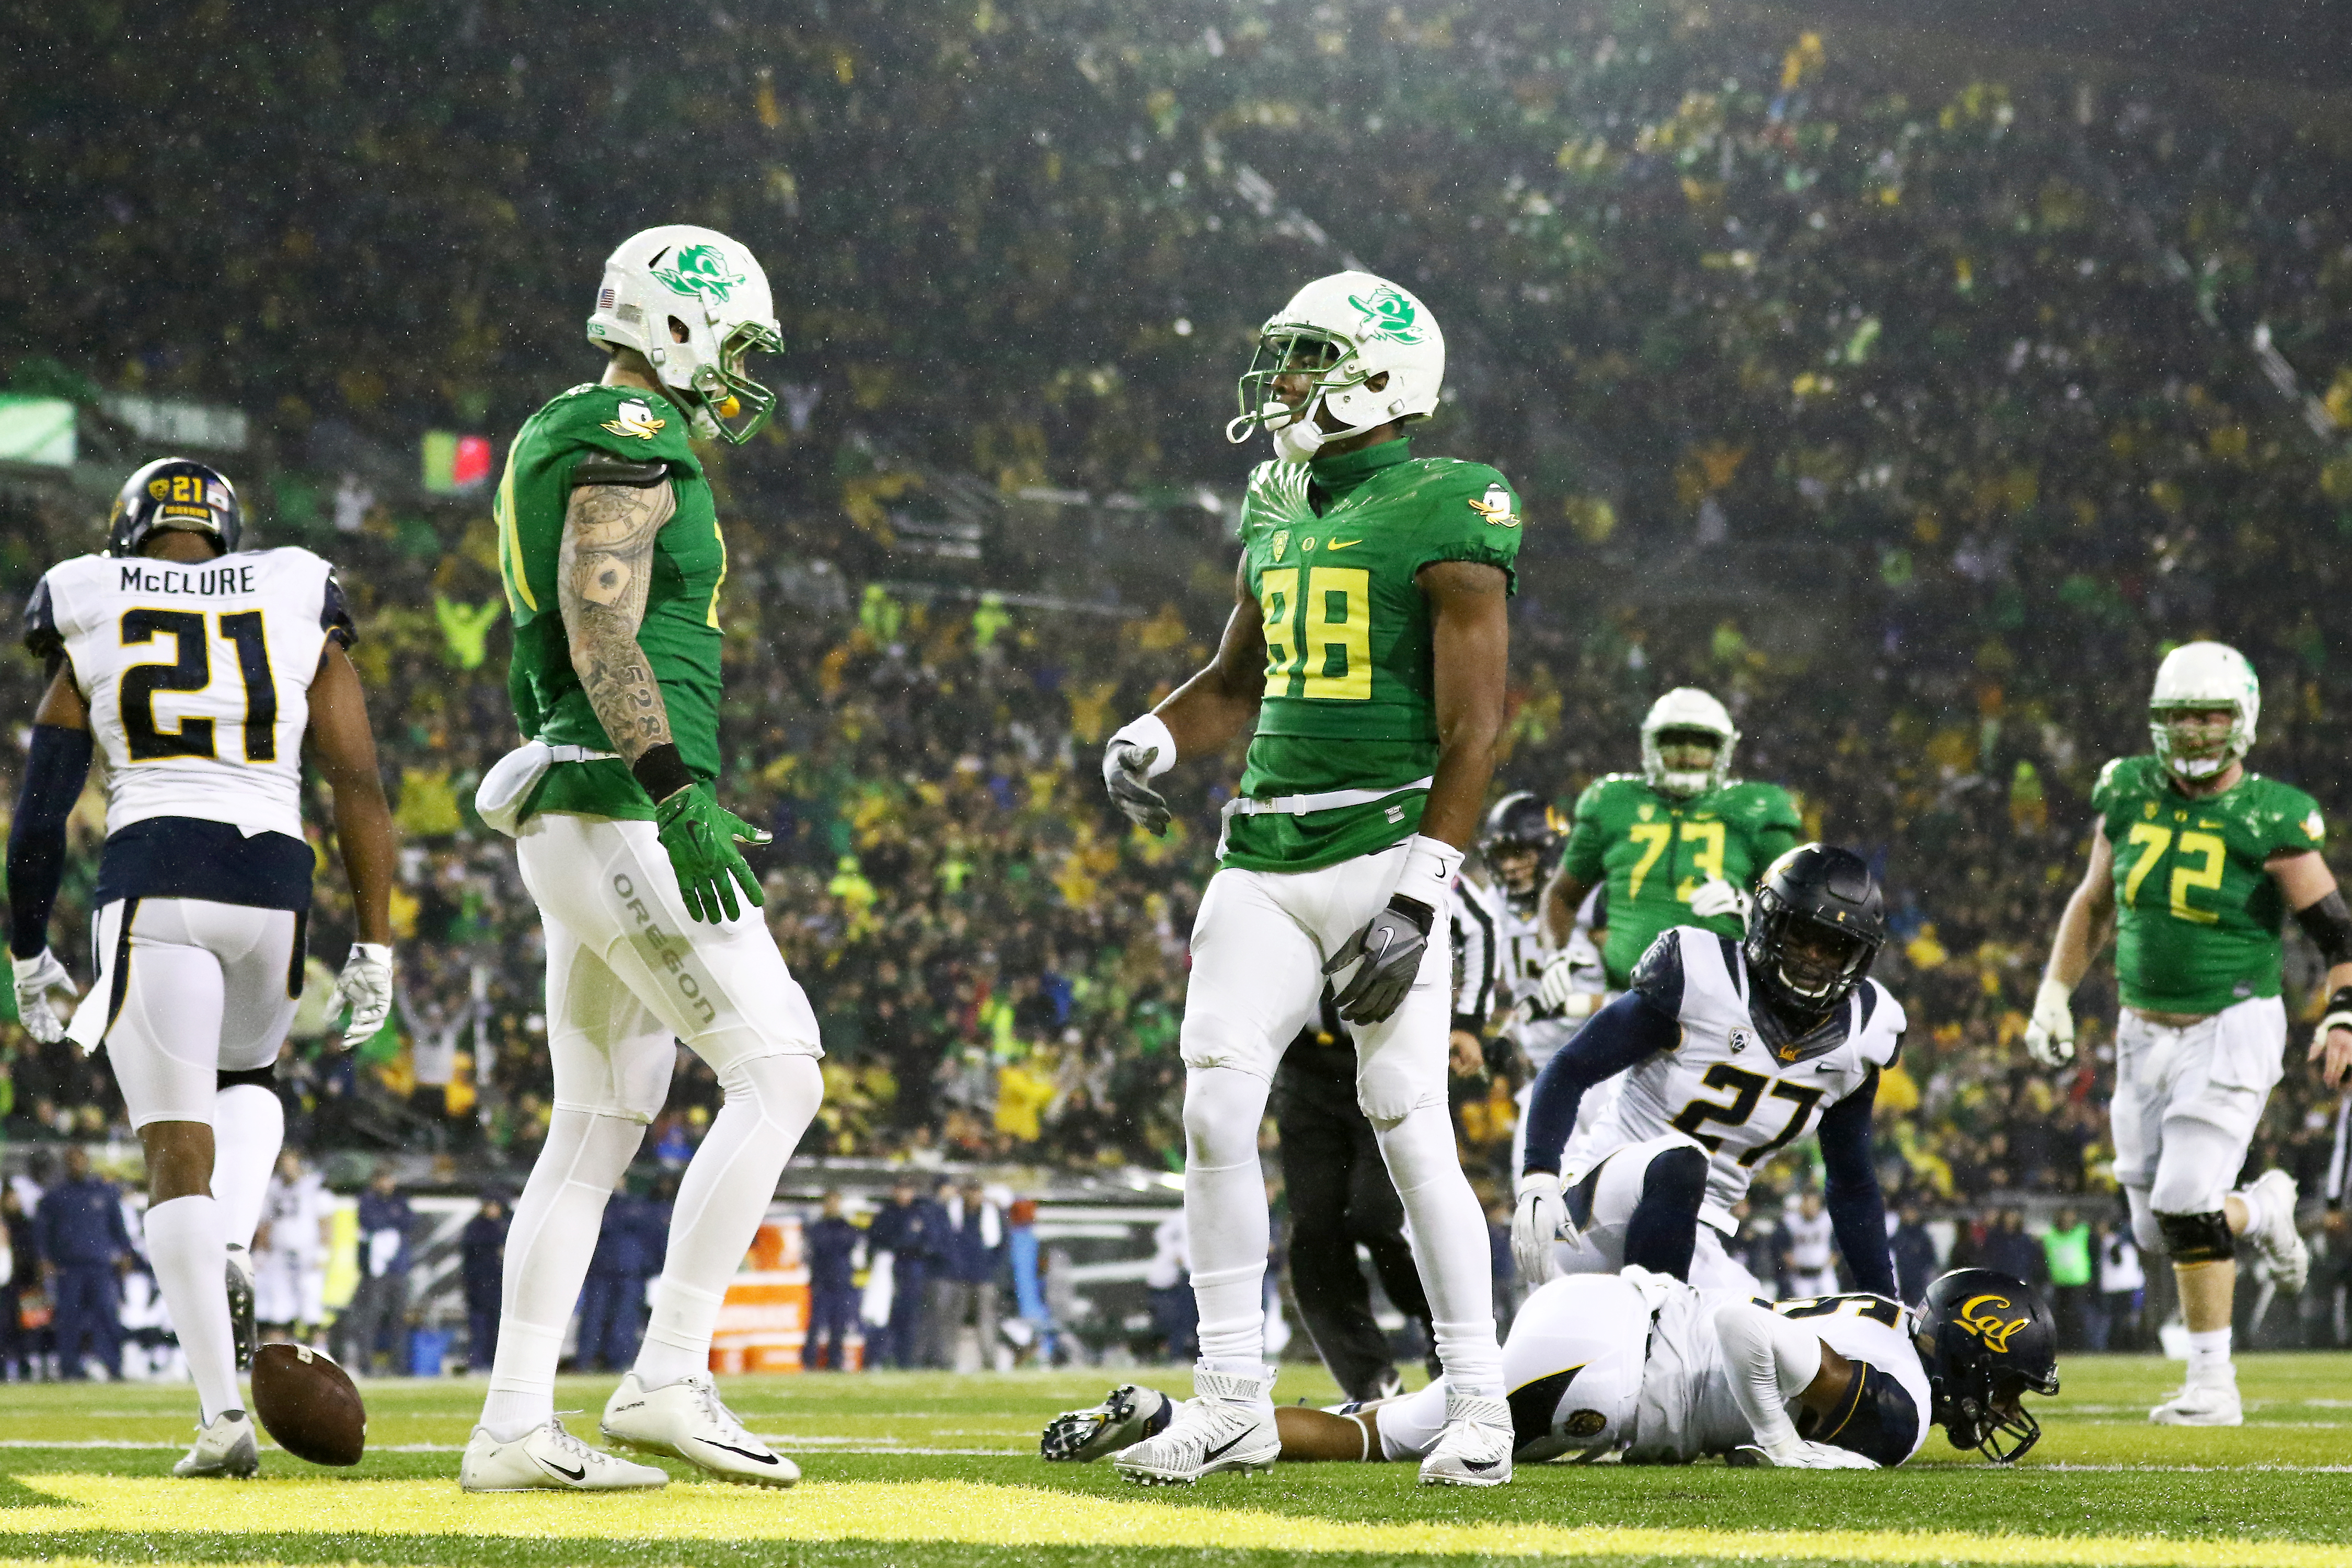 Oregon wide receiver Dwayne Stanford (88) looks to the crowd after scoring a touchdown during the first half of an NCAA college football game against California, Saturday, Nov. 7, 2015, in Eugene, Ore. (AP Photo/Ryan Kang)